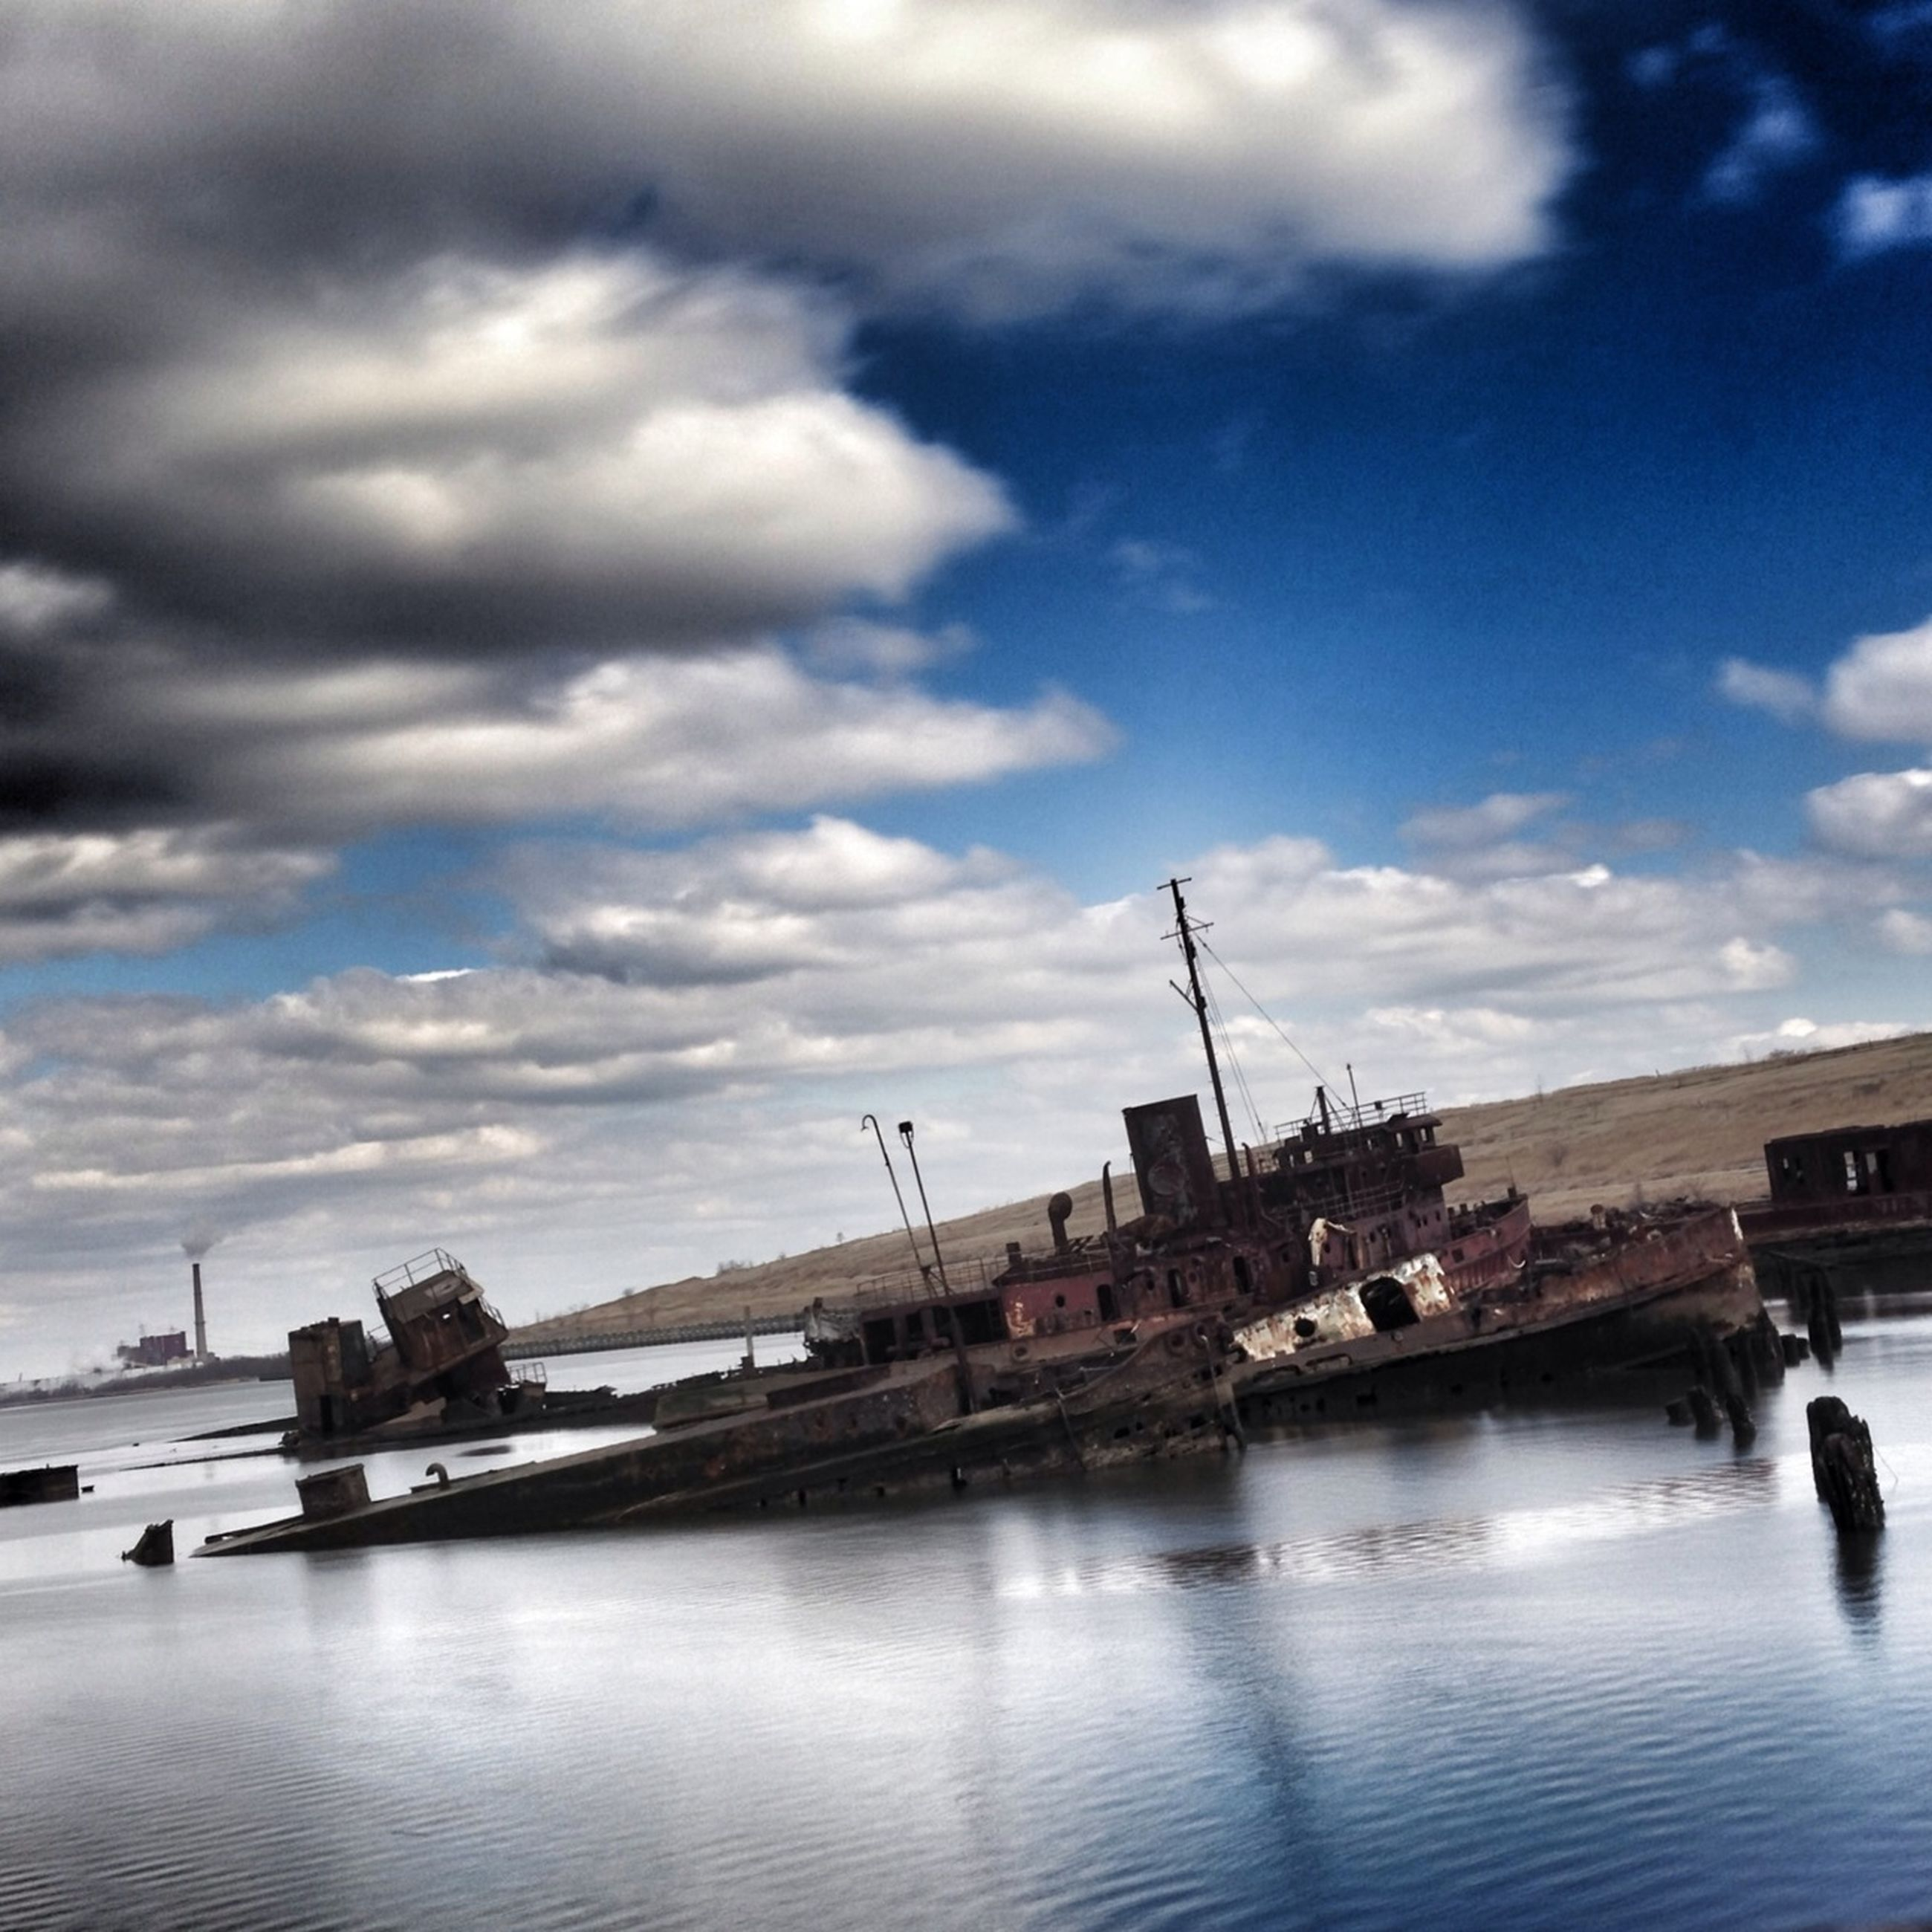 water, sky, built structure, architecture, cloud - sky, waterfront, building exterior, river, cloudy, cloud, connection, transportation, harbor, sea, nature, nautical vessel, day, outdoors, bridge - man made structure, no people